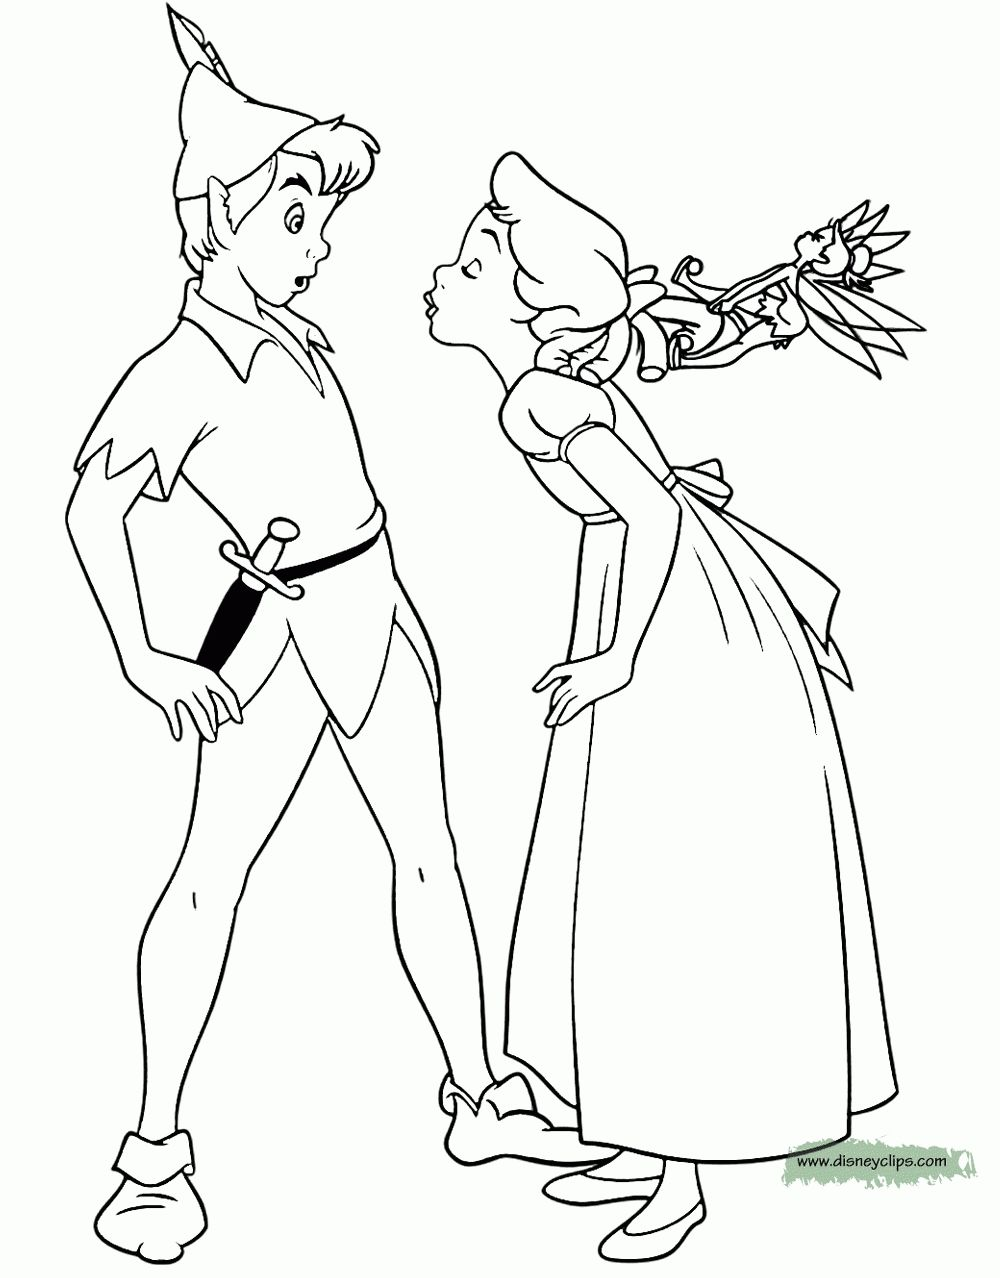 Disney Coloring Pages Peter Pan Disney Coloring Pages Peter Pan Disney Peter Pan Col Tinkerbell Coloring Pages Disney Coloring Pages Peter Pan Coloring Pages